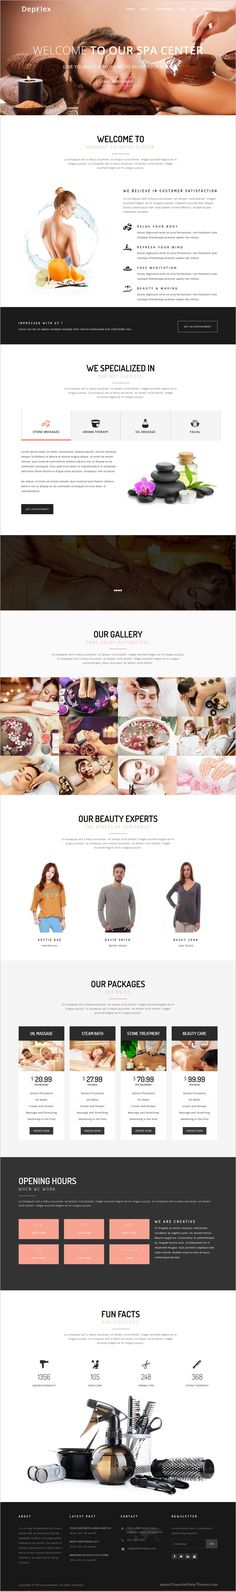 Depilex Spa is a Multipurpose #WordPress Theme for #beauty #salon, spa and wellness center websites download now➩ https://themeforest.net/item/depilex-salon-parlour-spa-gym-multipurpose-wp-theme/19197711?ref=Datasata